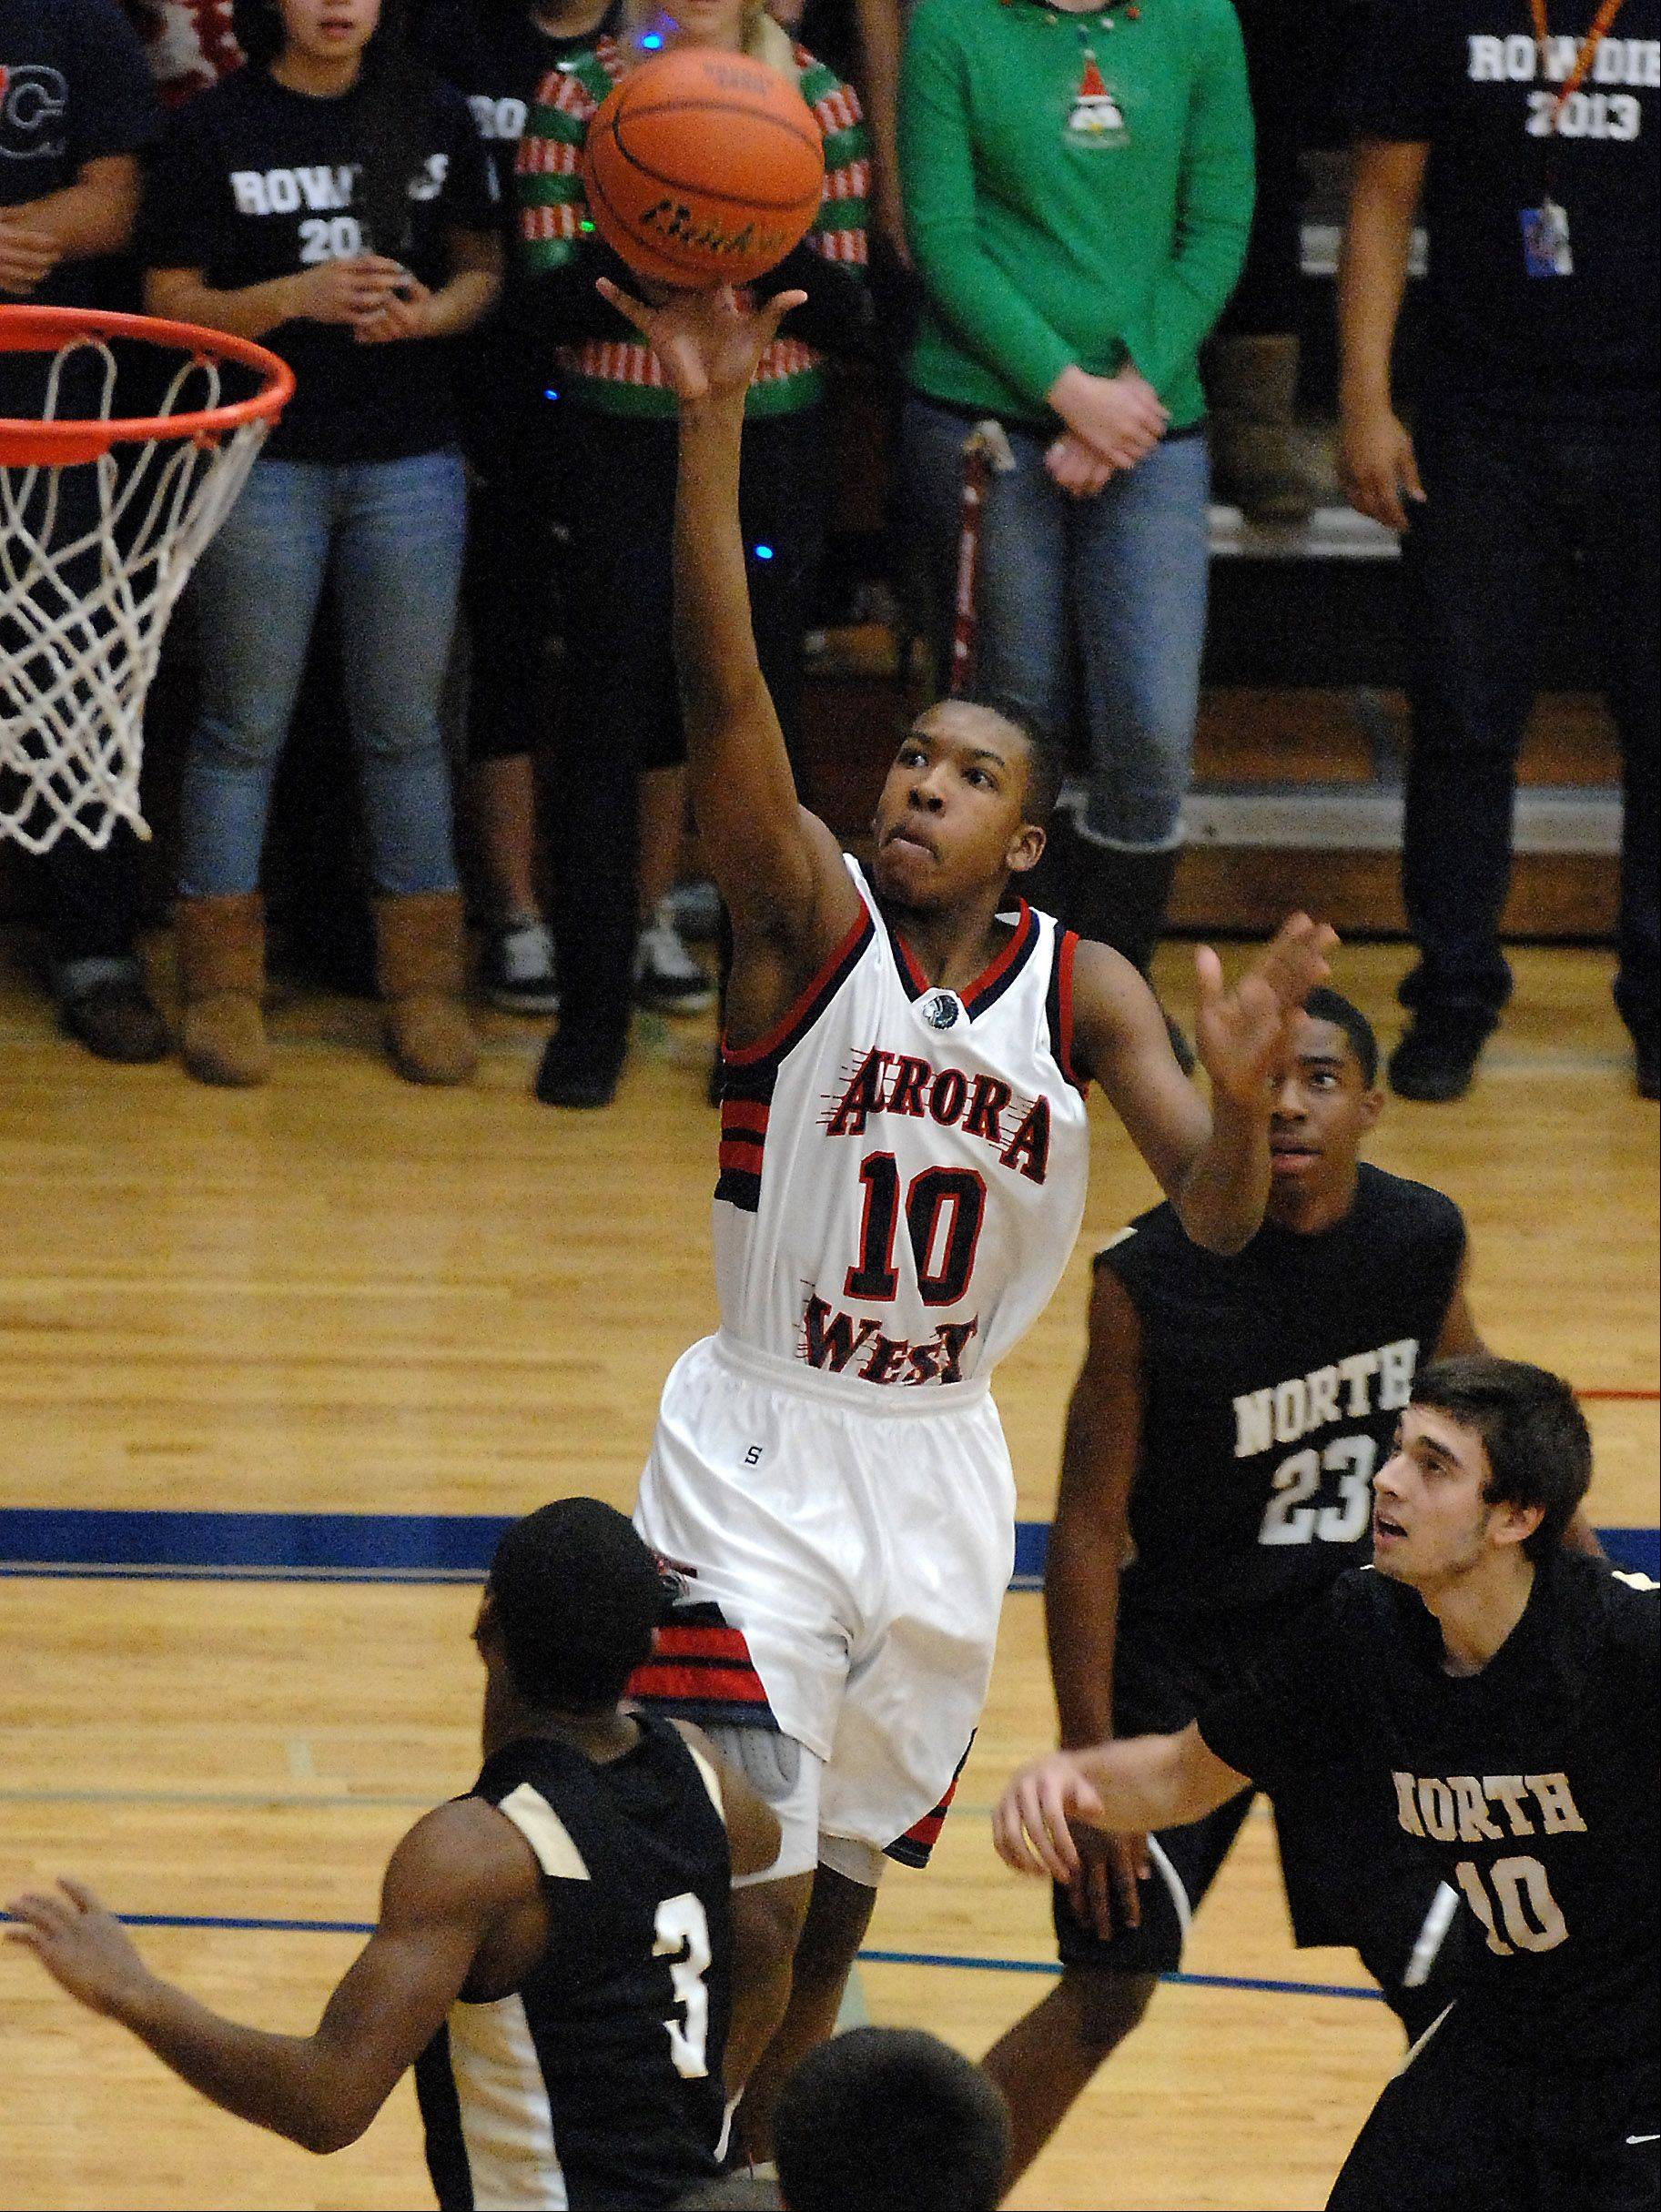 West Aurora's Jontrel Walker scores on a running one-hander against Glenbard North during Friday's game at West Aurora.